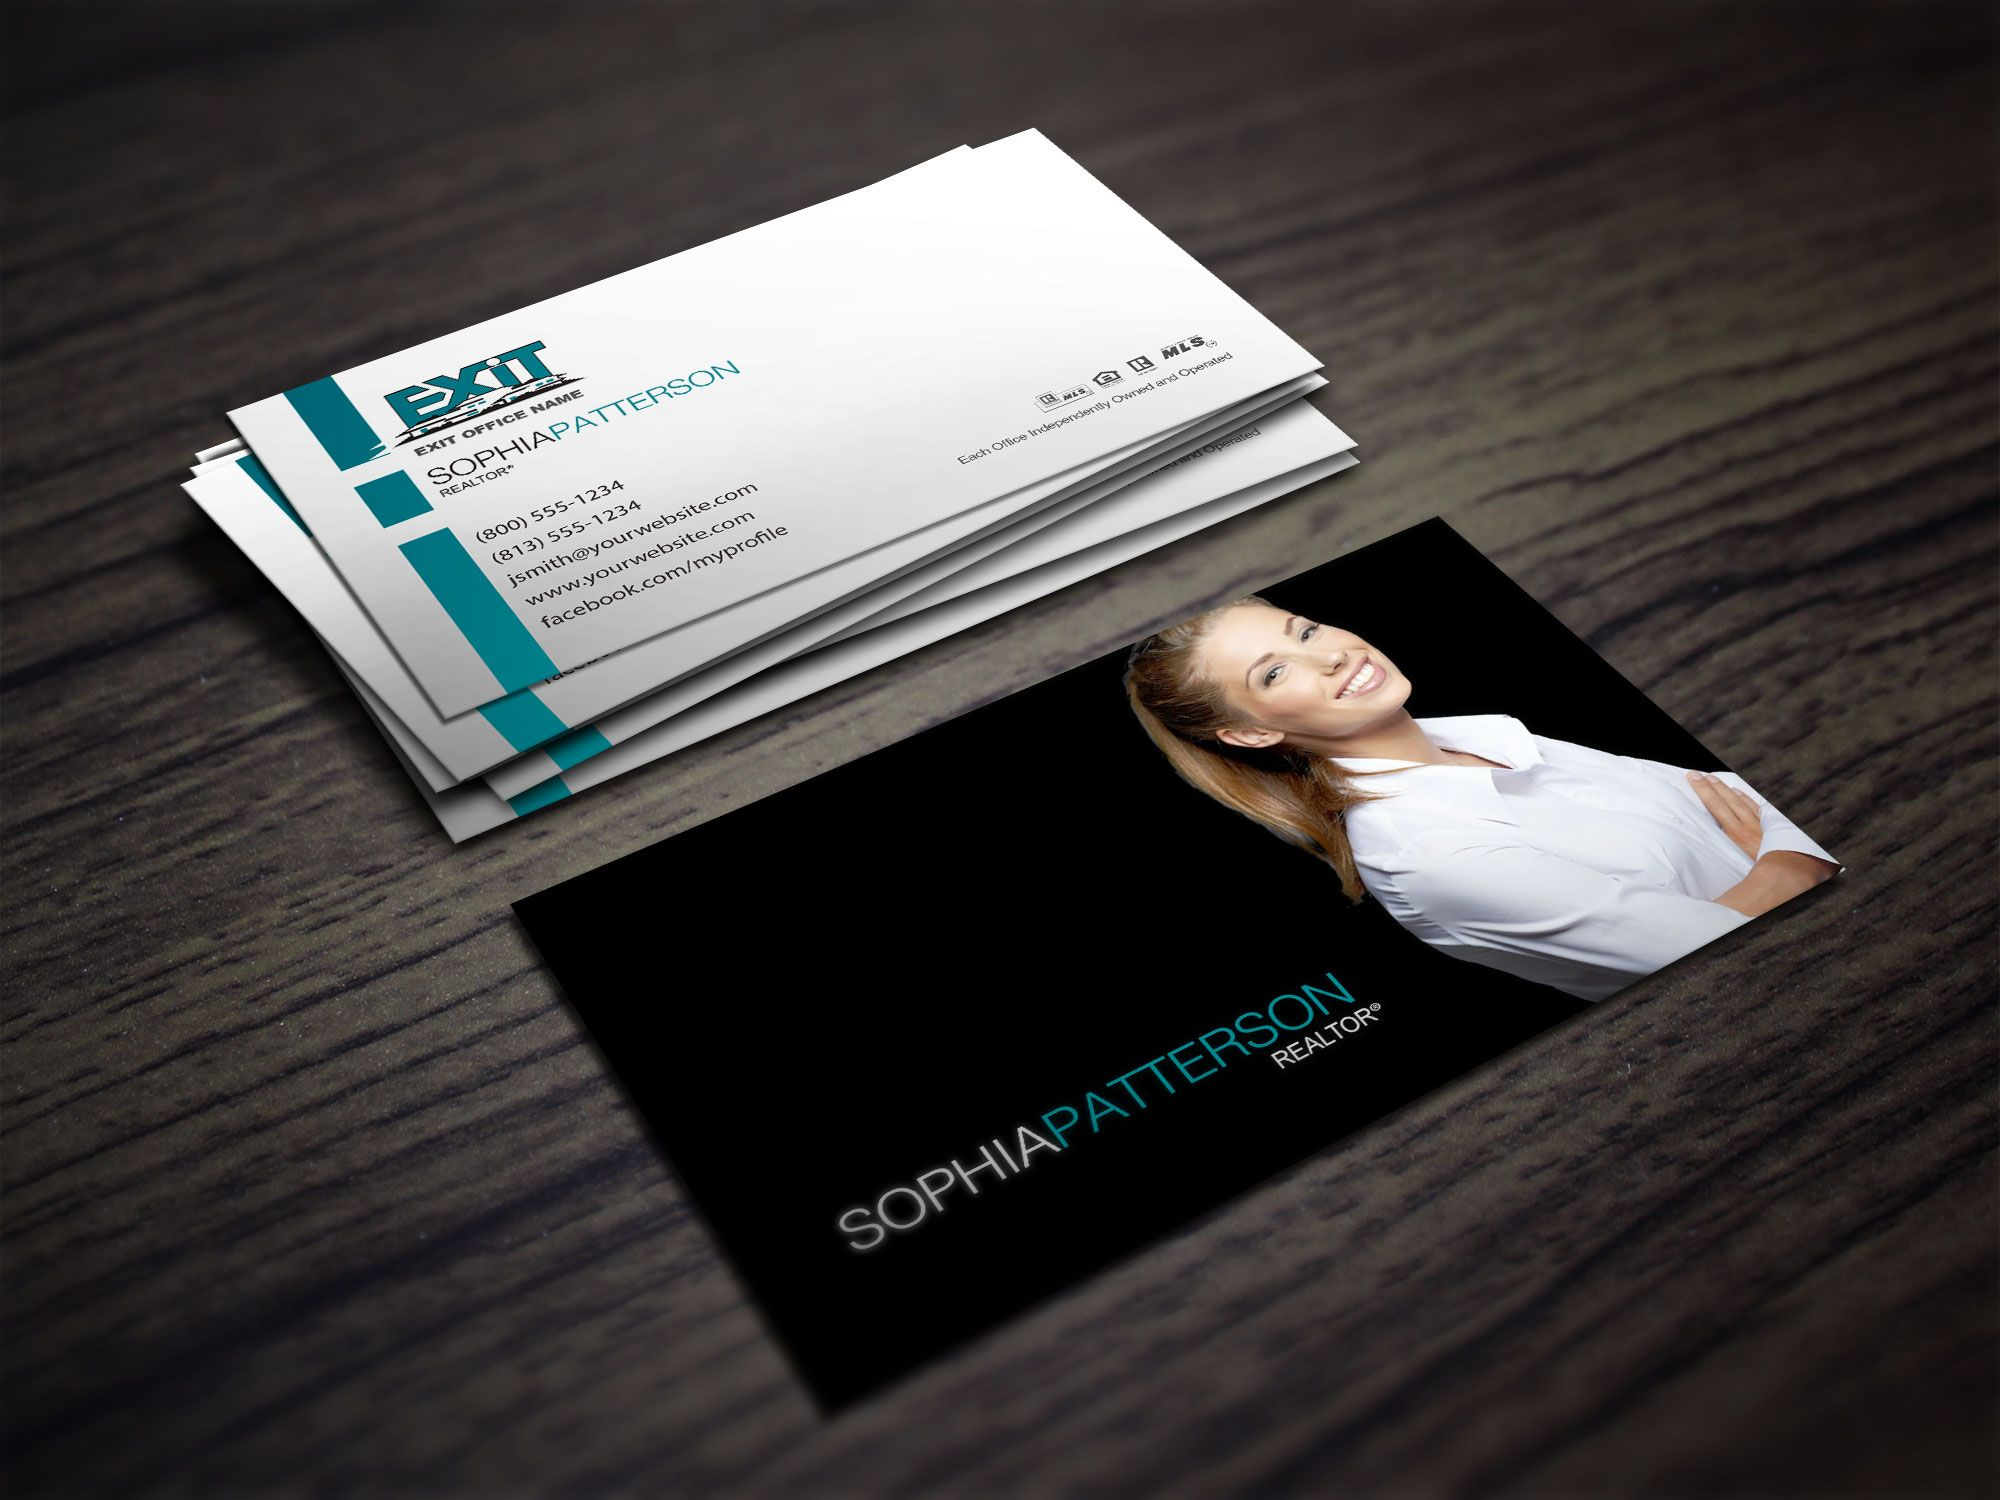 Clean And Modern Exit Realty Business Card Designs For Realtors Real Estate Agent Business Cards Real Estate Business Cards Realtor Business Cards